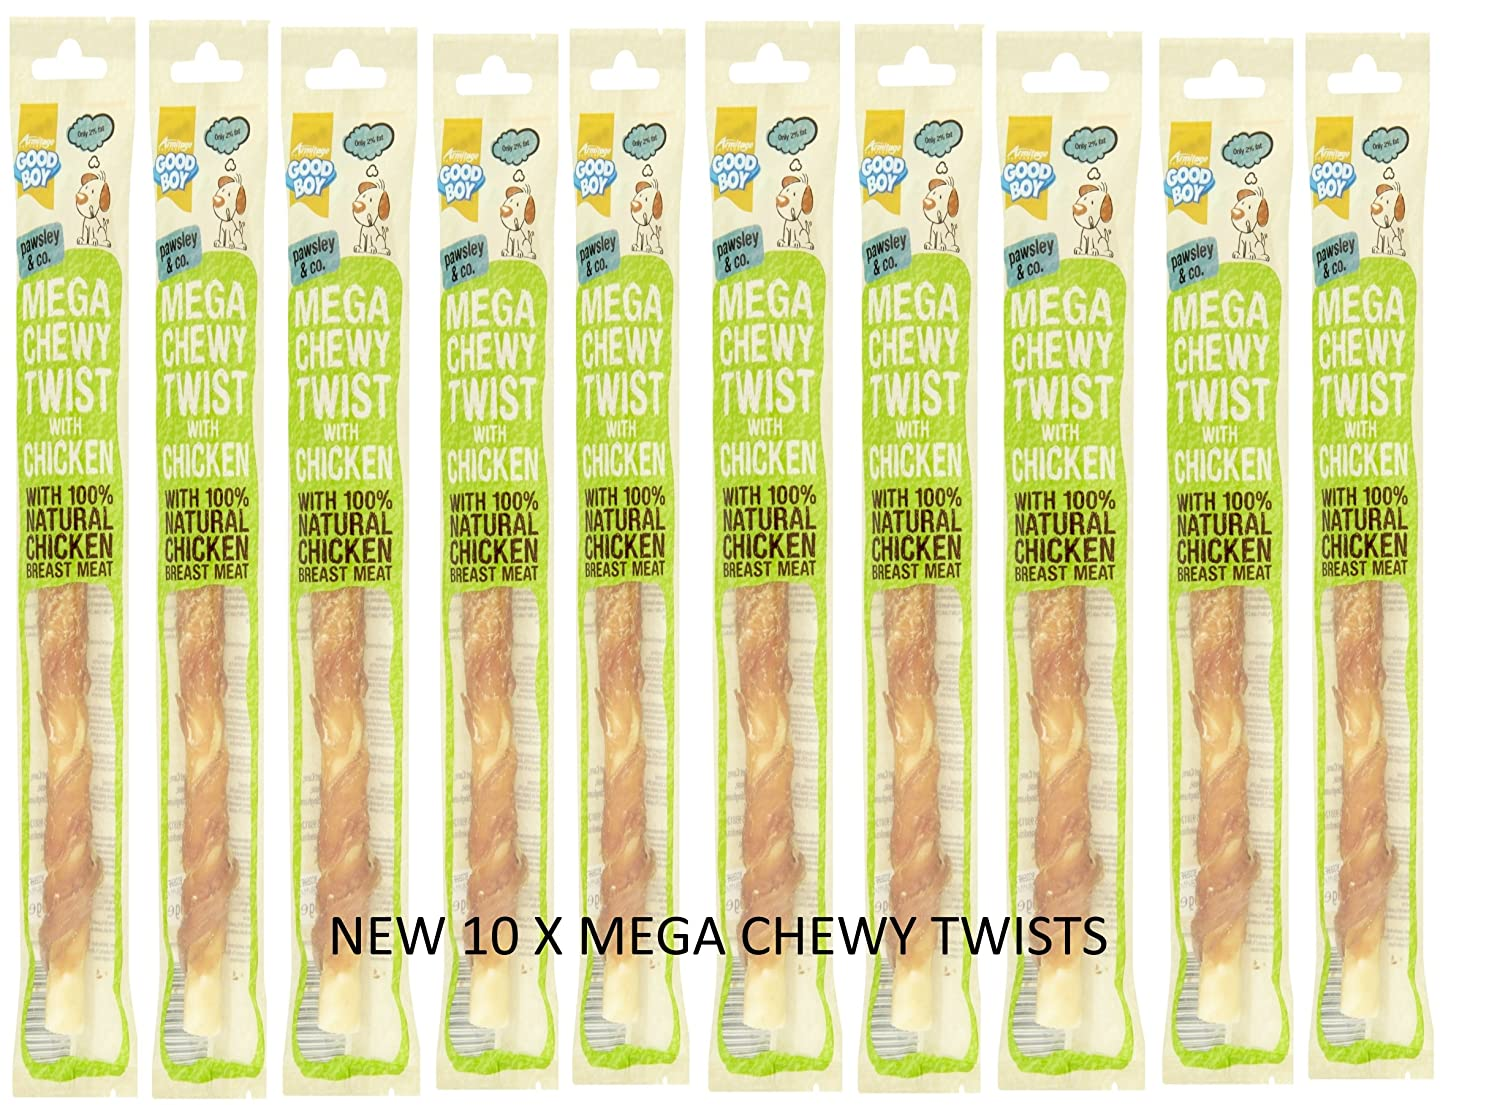 10 PACK GOODBOY PAWSLEY & CO MEGA CHEWY TWISTS WITH CHICKEN ARMITAGE